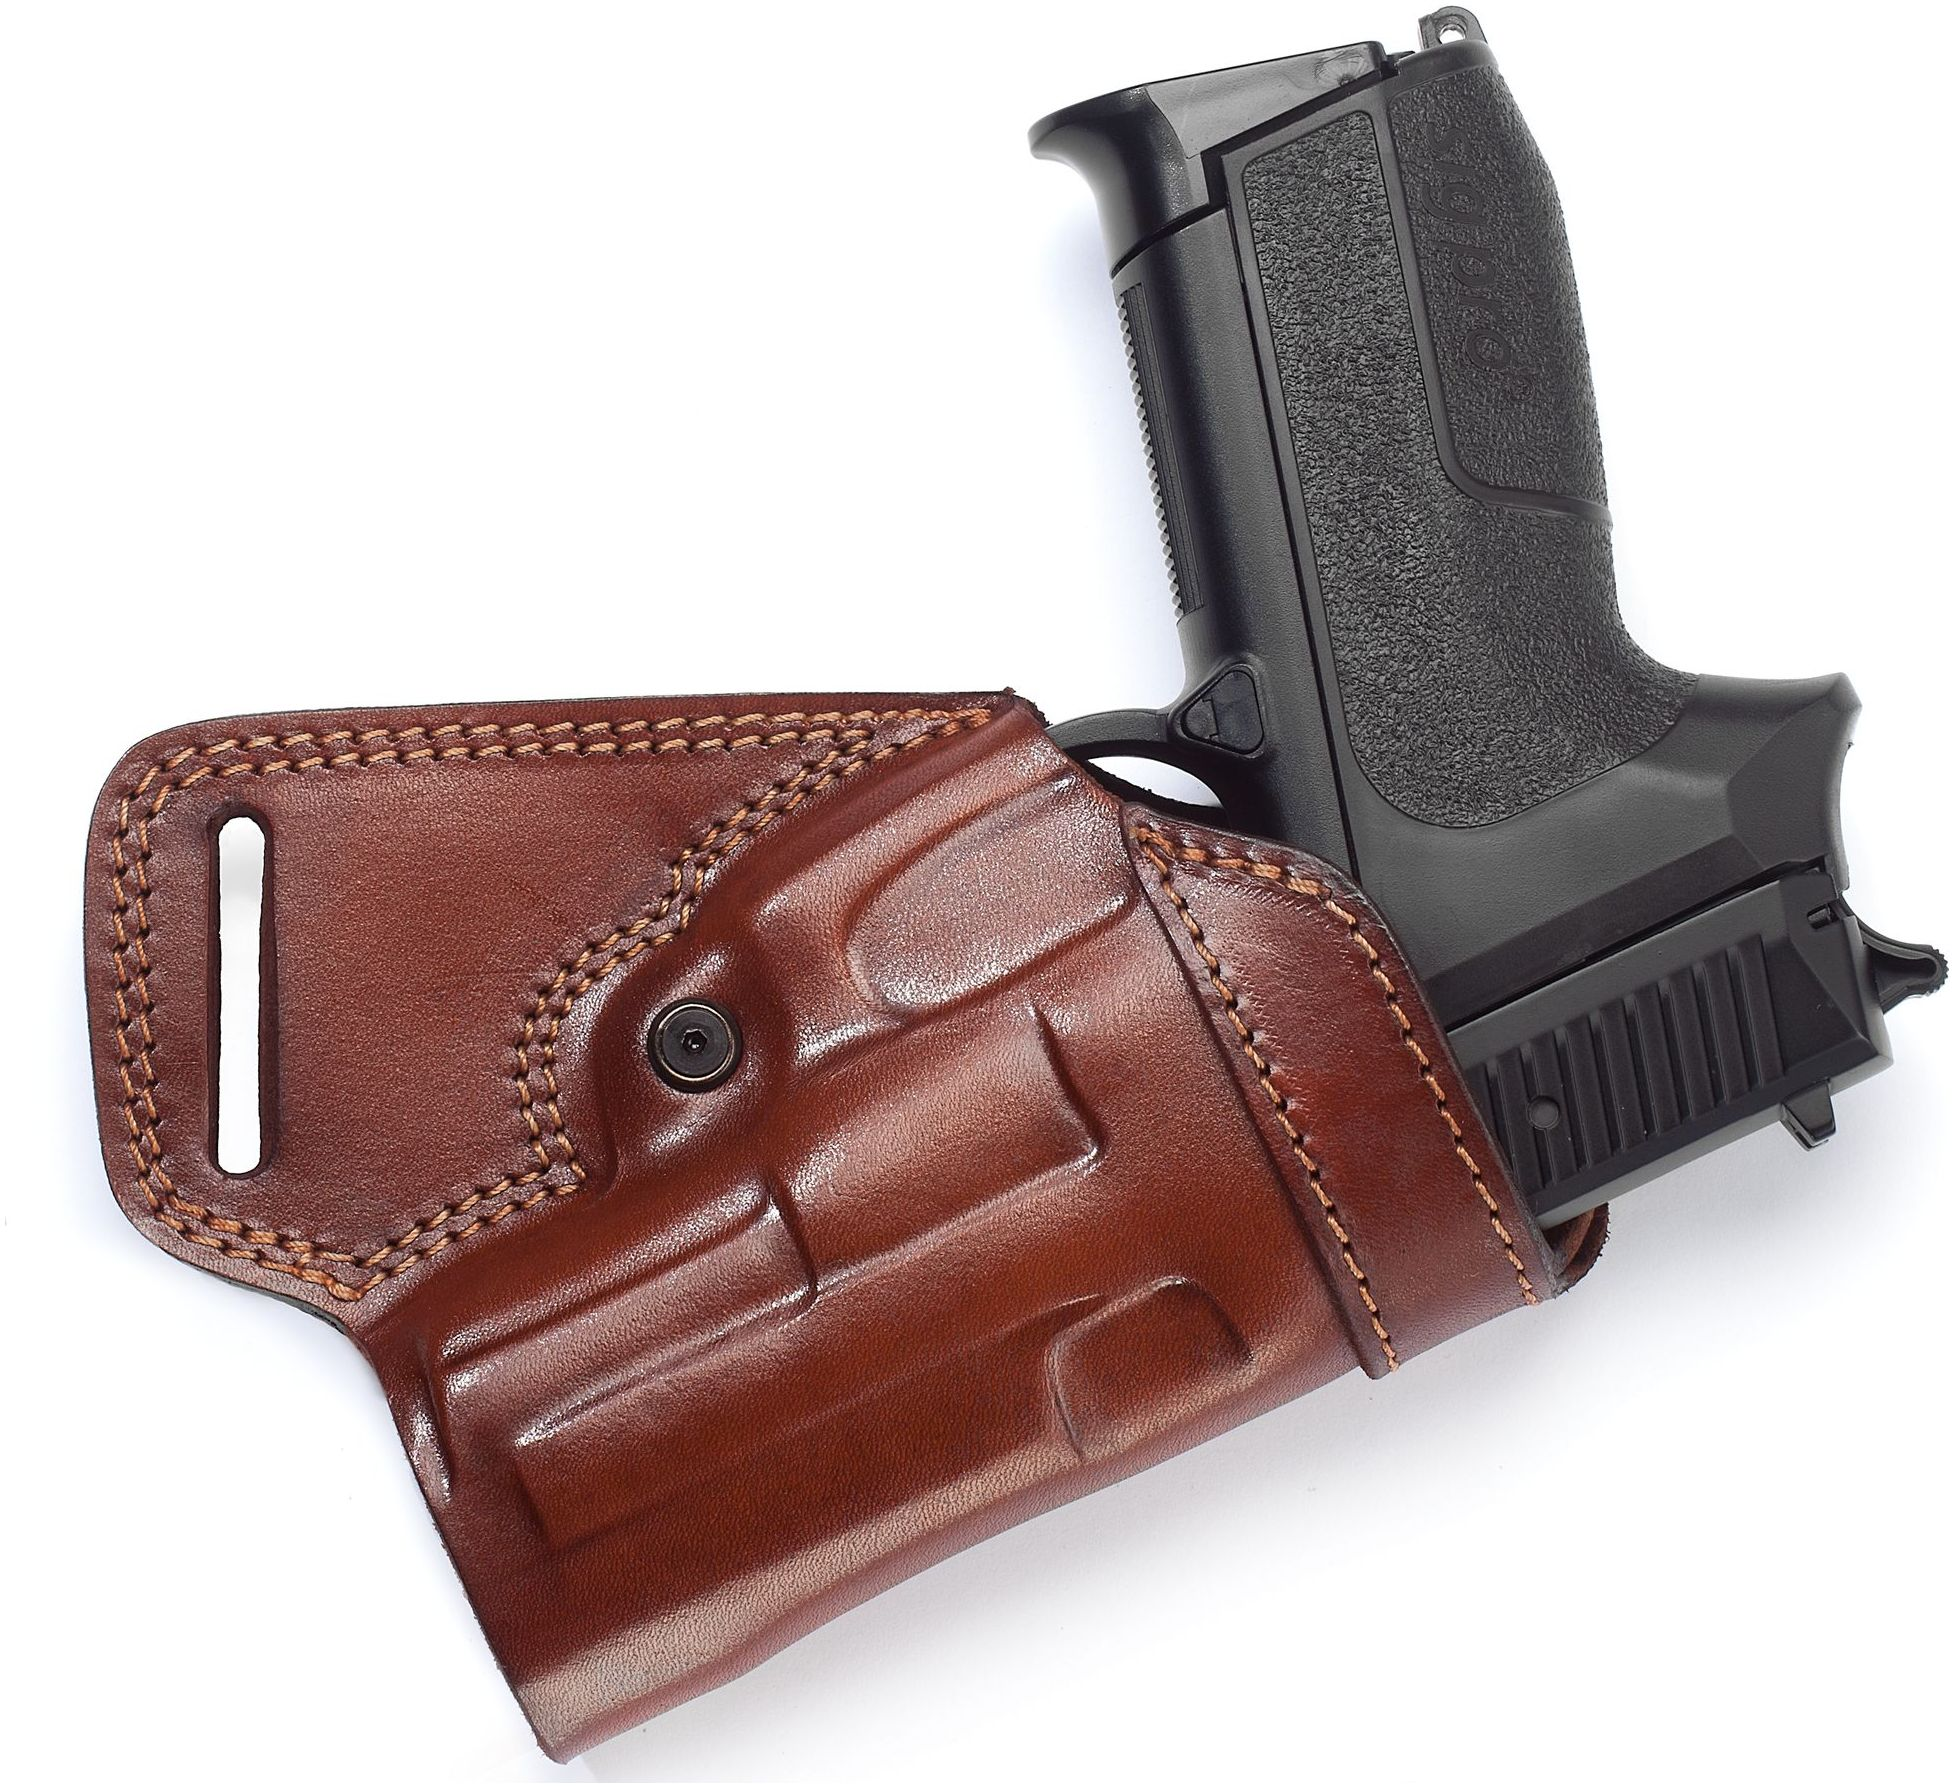 Sob Small Of Back Leather Belt Holster Craft Holsters